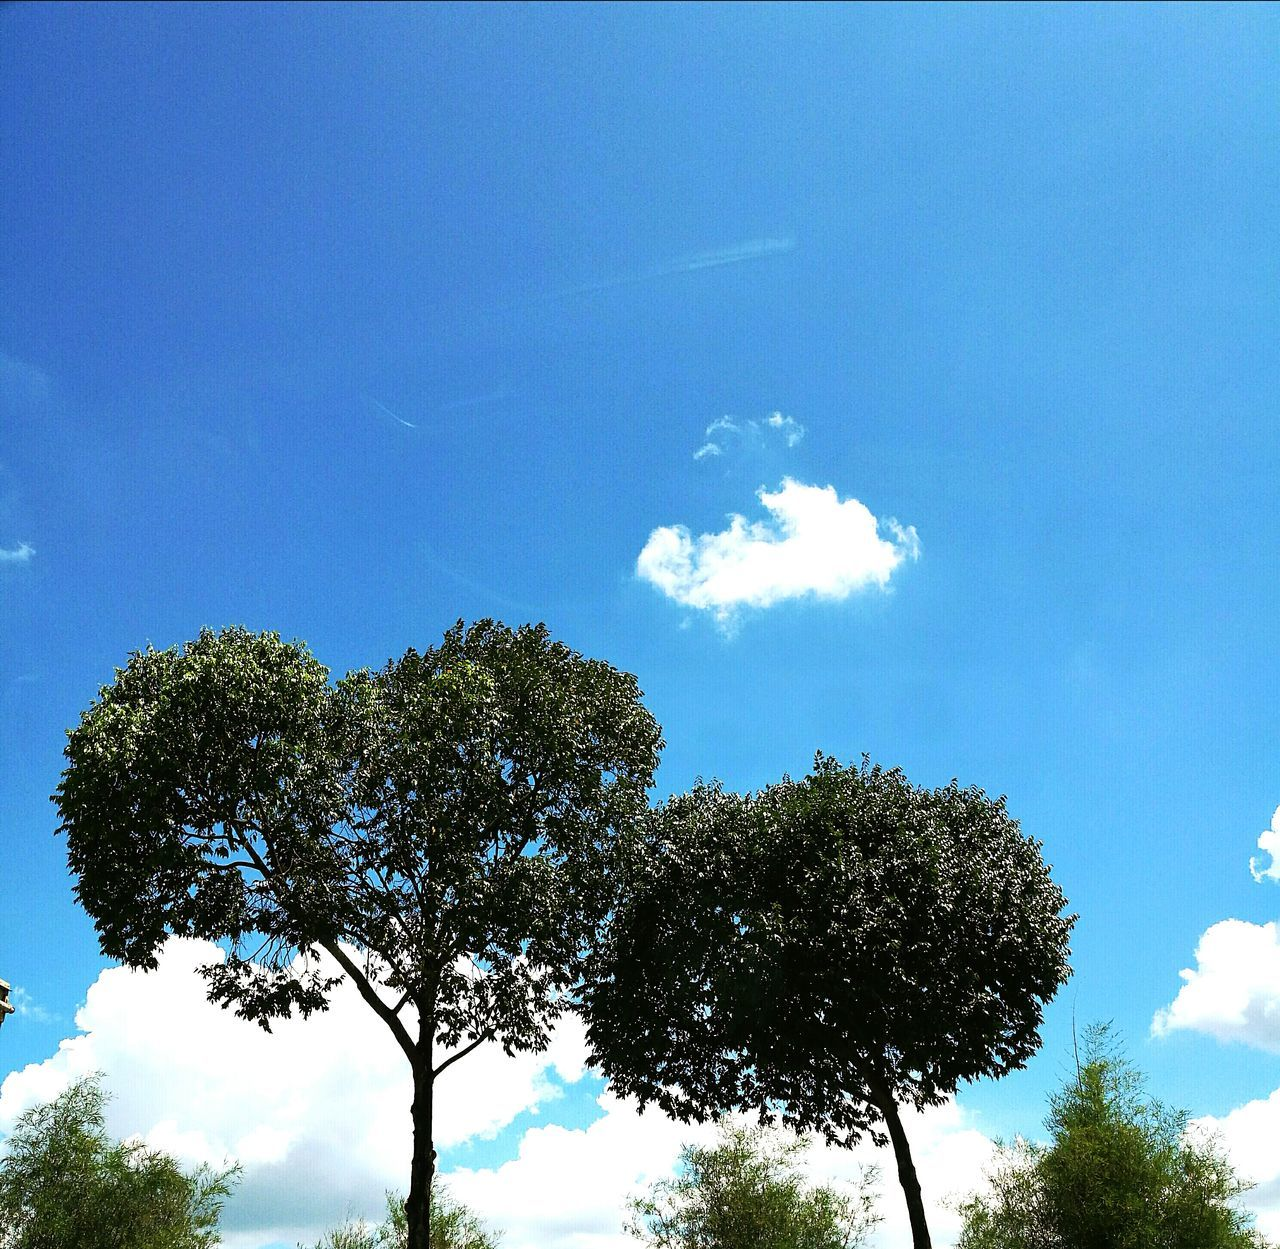 Tree Sky Blue Nature No People Beauty In Nature Cloud - Sky Outdoors Day Trees And Sky Trees Trees And Nature Leaning Leaning Tree Heart Shaped  Heart Shaped Tree Green Leaning On Leaning On A Tree Nature Photography Nature_collection The Purist (no Edit, No Filter) No Filter, No Edit, Just Photography